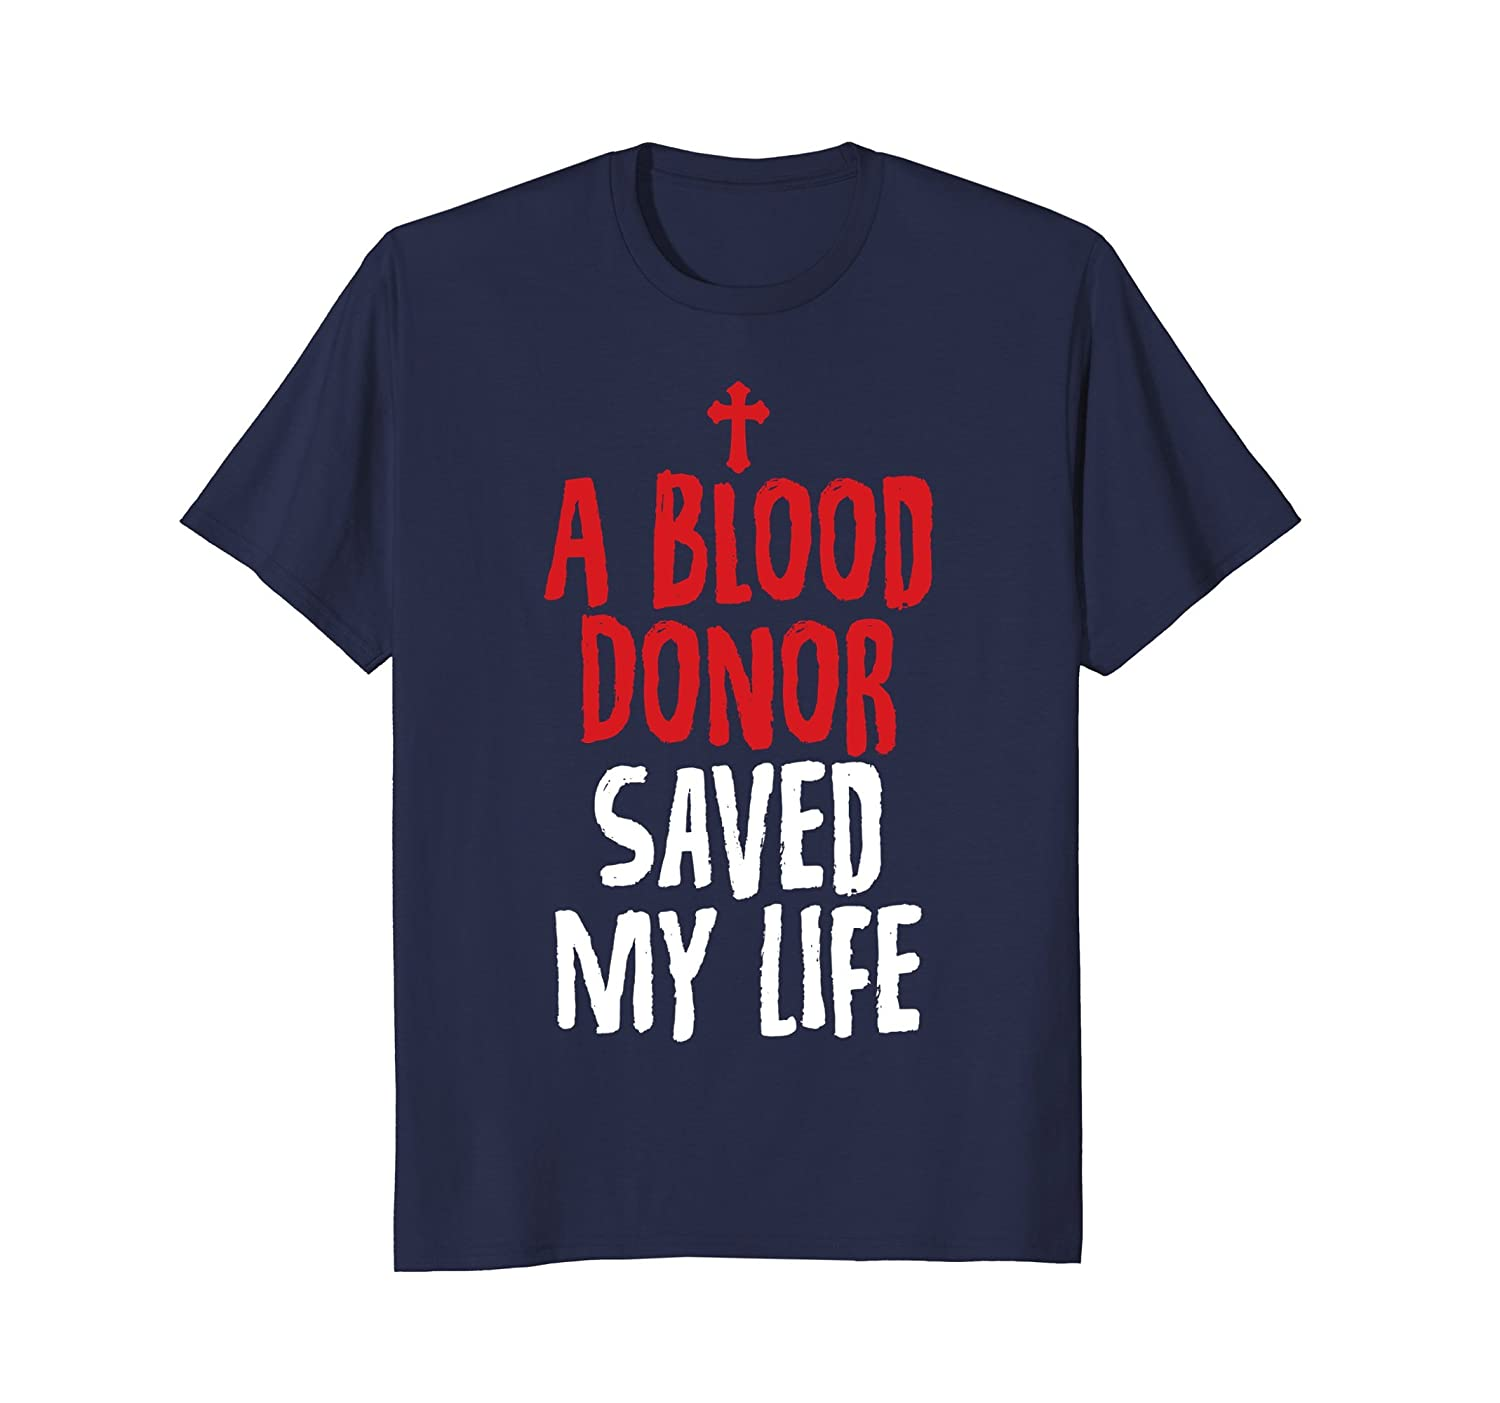 A Blood Donor Saved My Life Jesus Christ Christian T Shirts